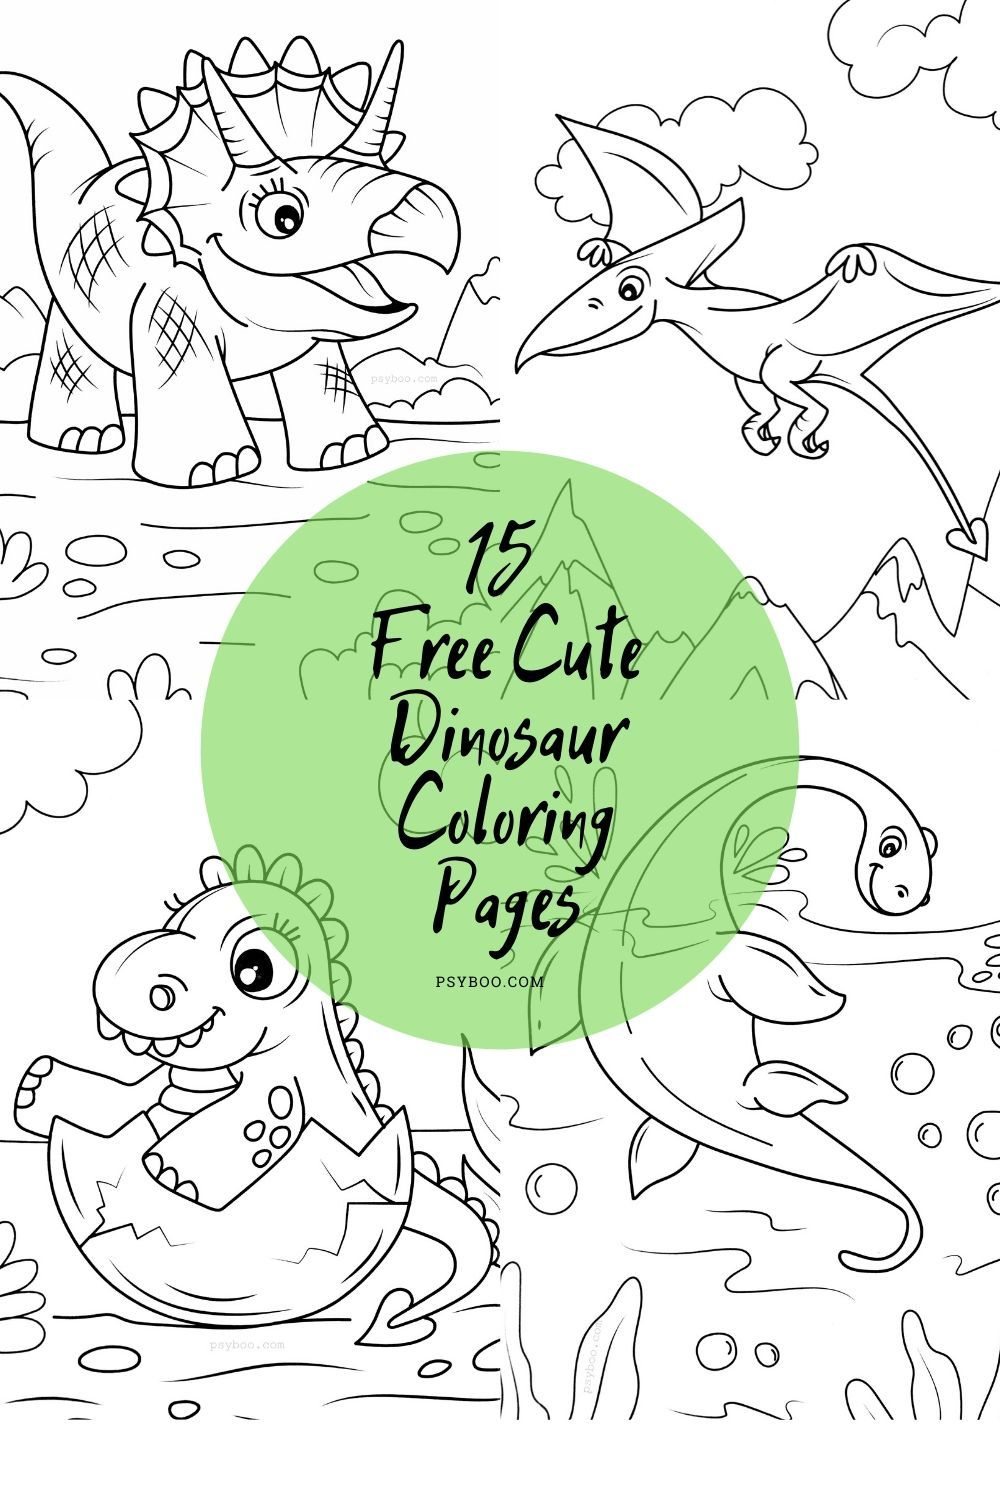 15 Cute Dinosaur Coloring Pages For Free Dinosaur Coloring Pages Dinosaur Coloring Dinosaur Coloring Sheets